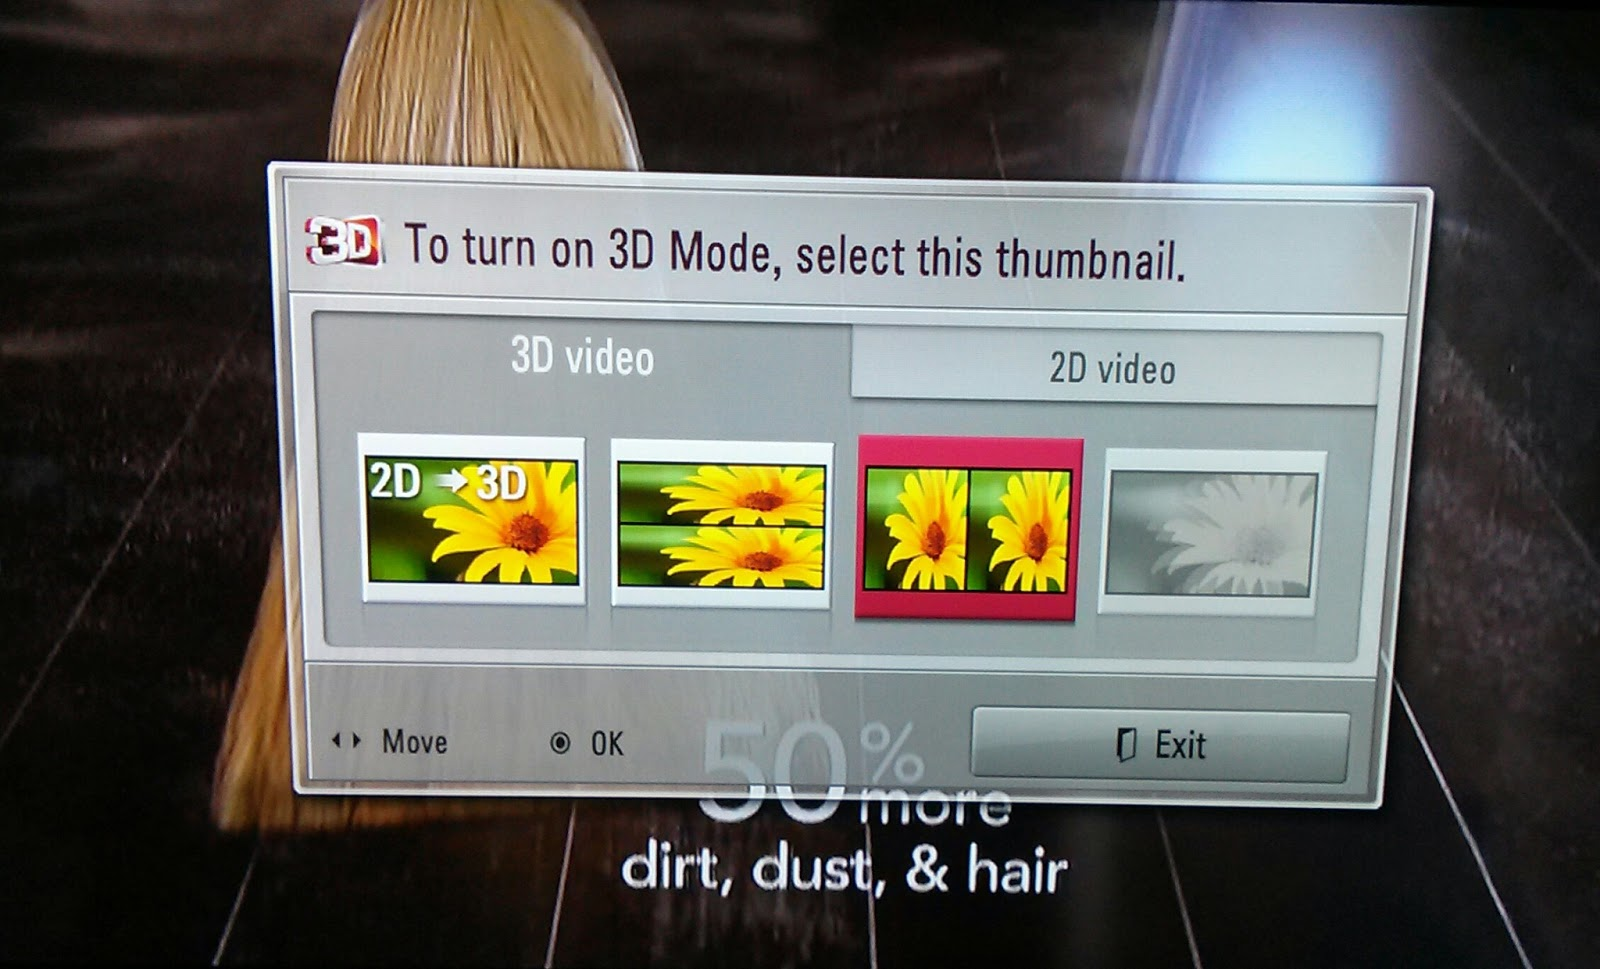 How To Enable Best 3d Settings For Lg Tv On Youtube 3d Videos